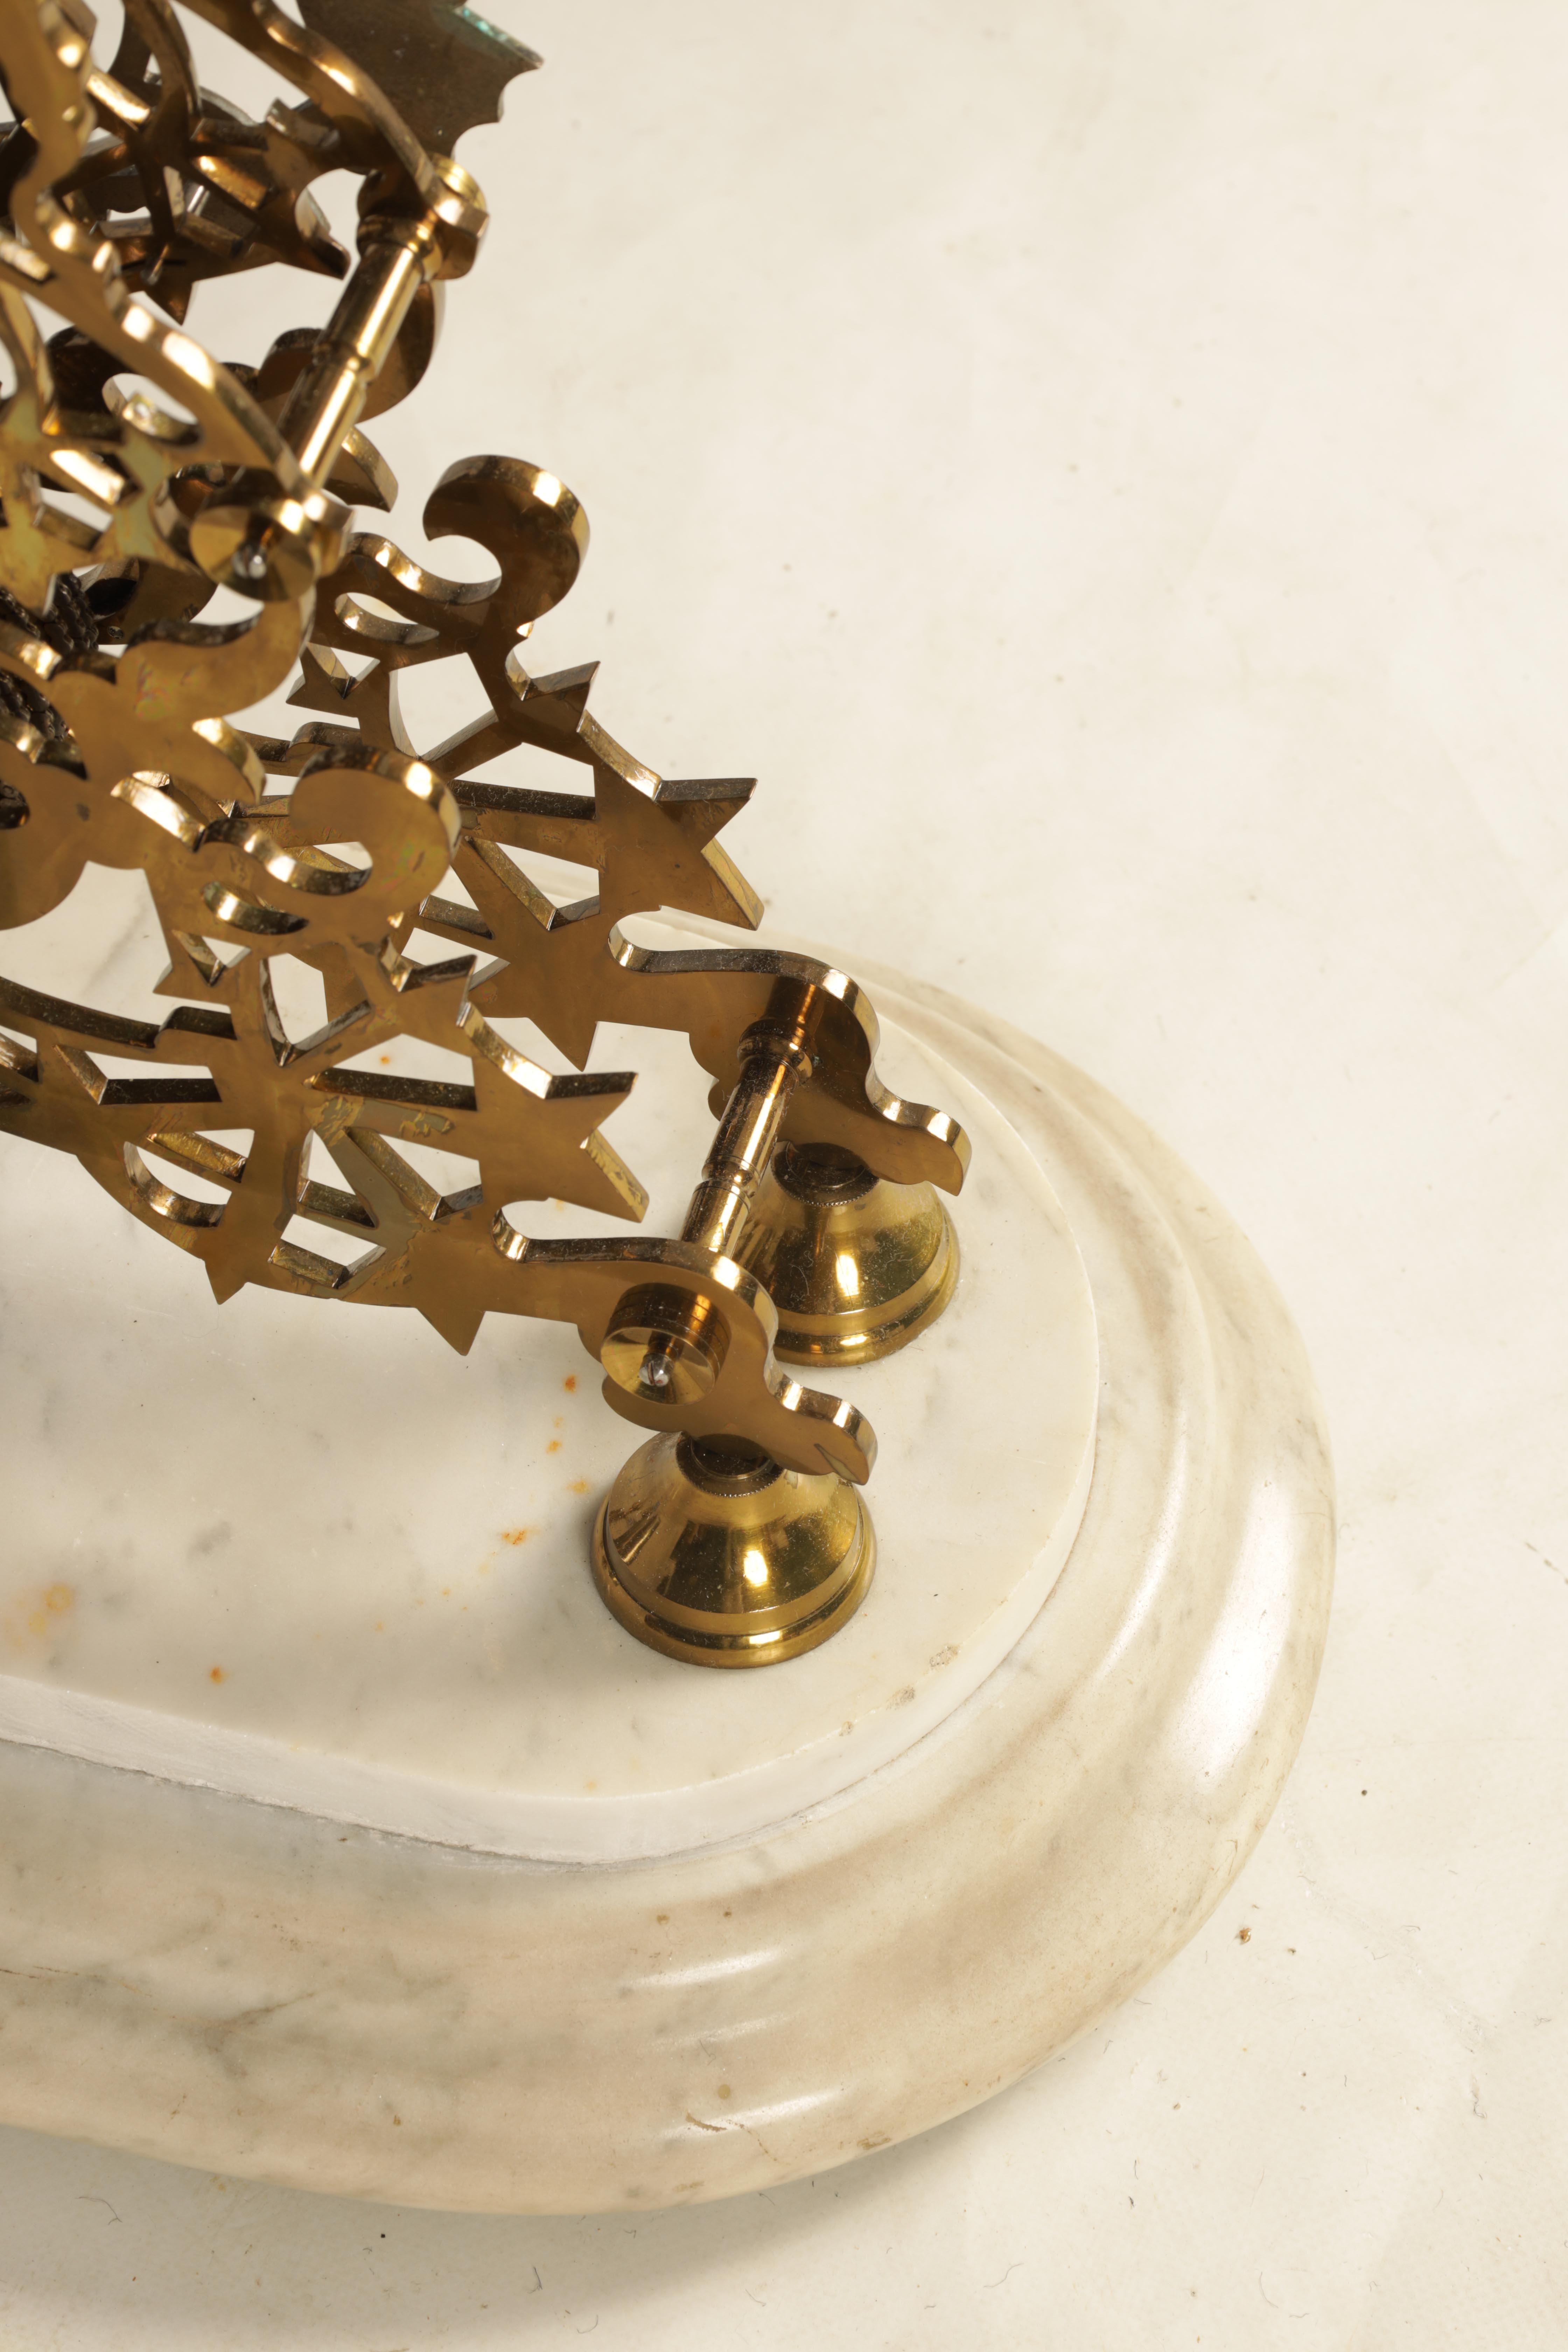 ATTRIBUTED TO EVANS OF HANDSWORTH A FINE LATE 19TH CENTURY BRASS FRAMED SKELETON TABLE REGULATOR - Image 8 of 12